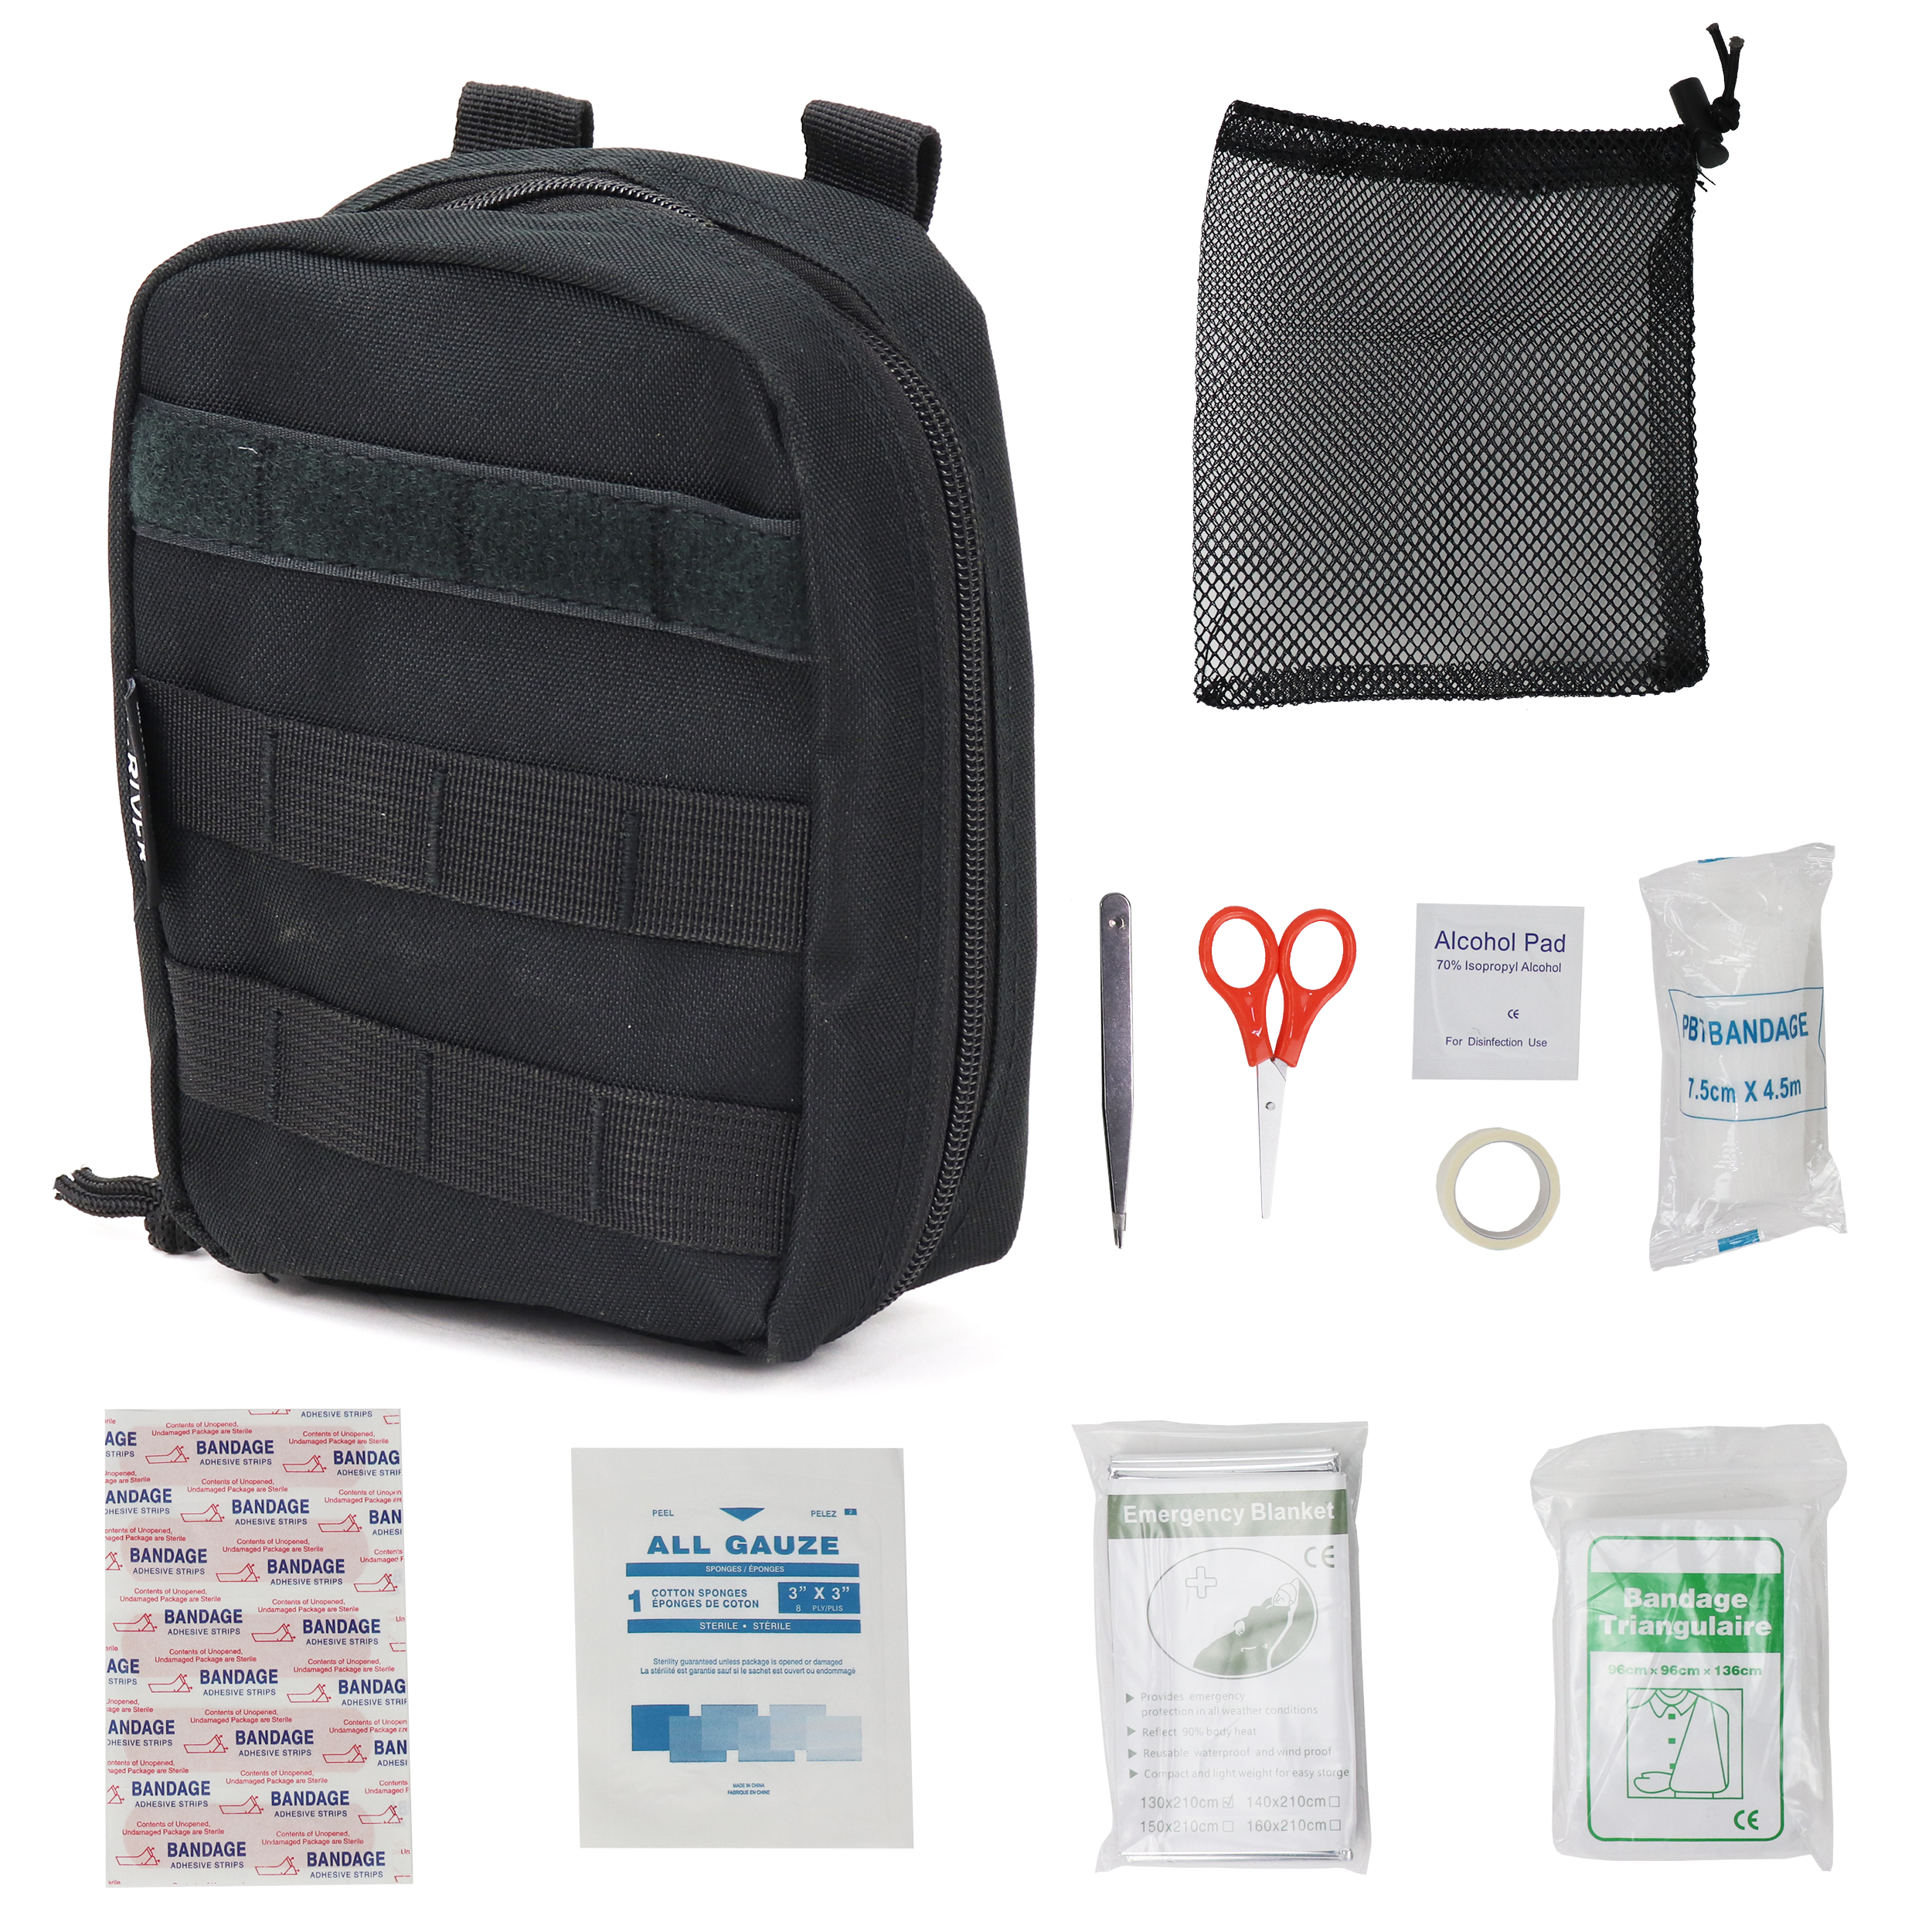 Osage River Compact First Aid Kit - Black